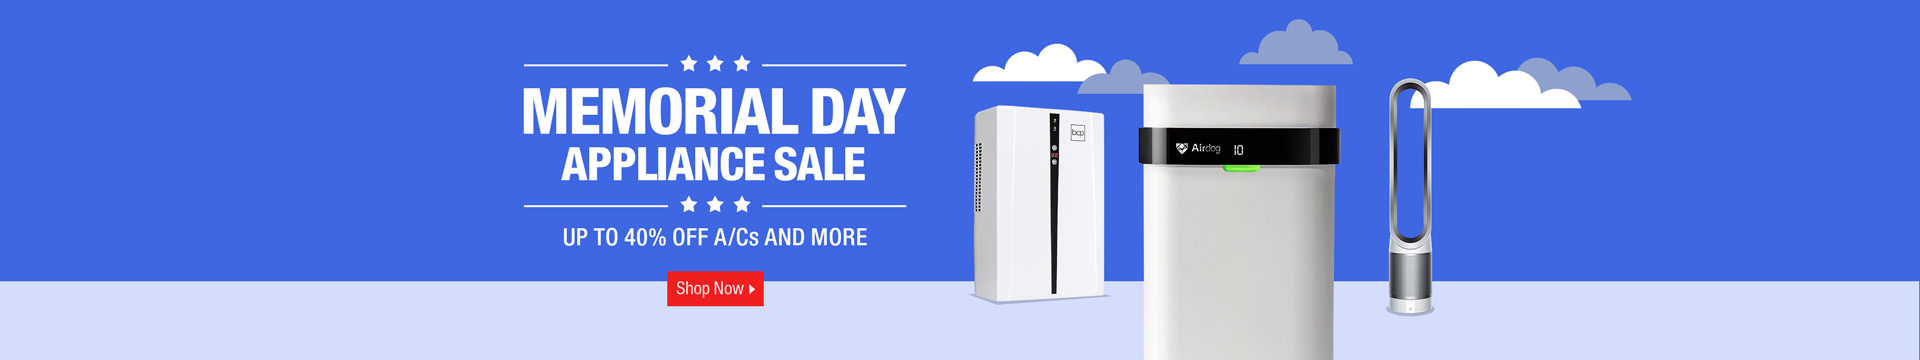 Memorial Day Appliance Sale